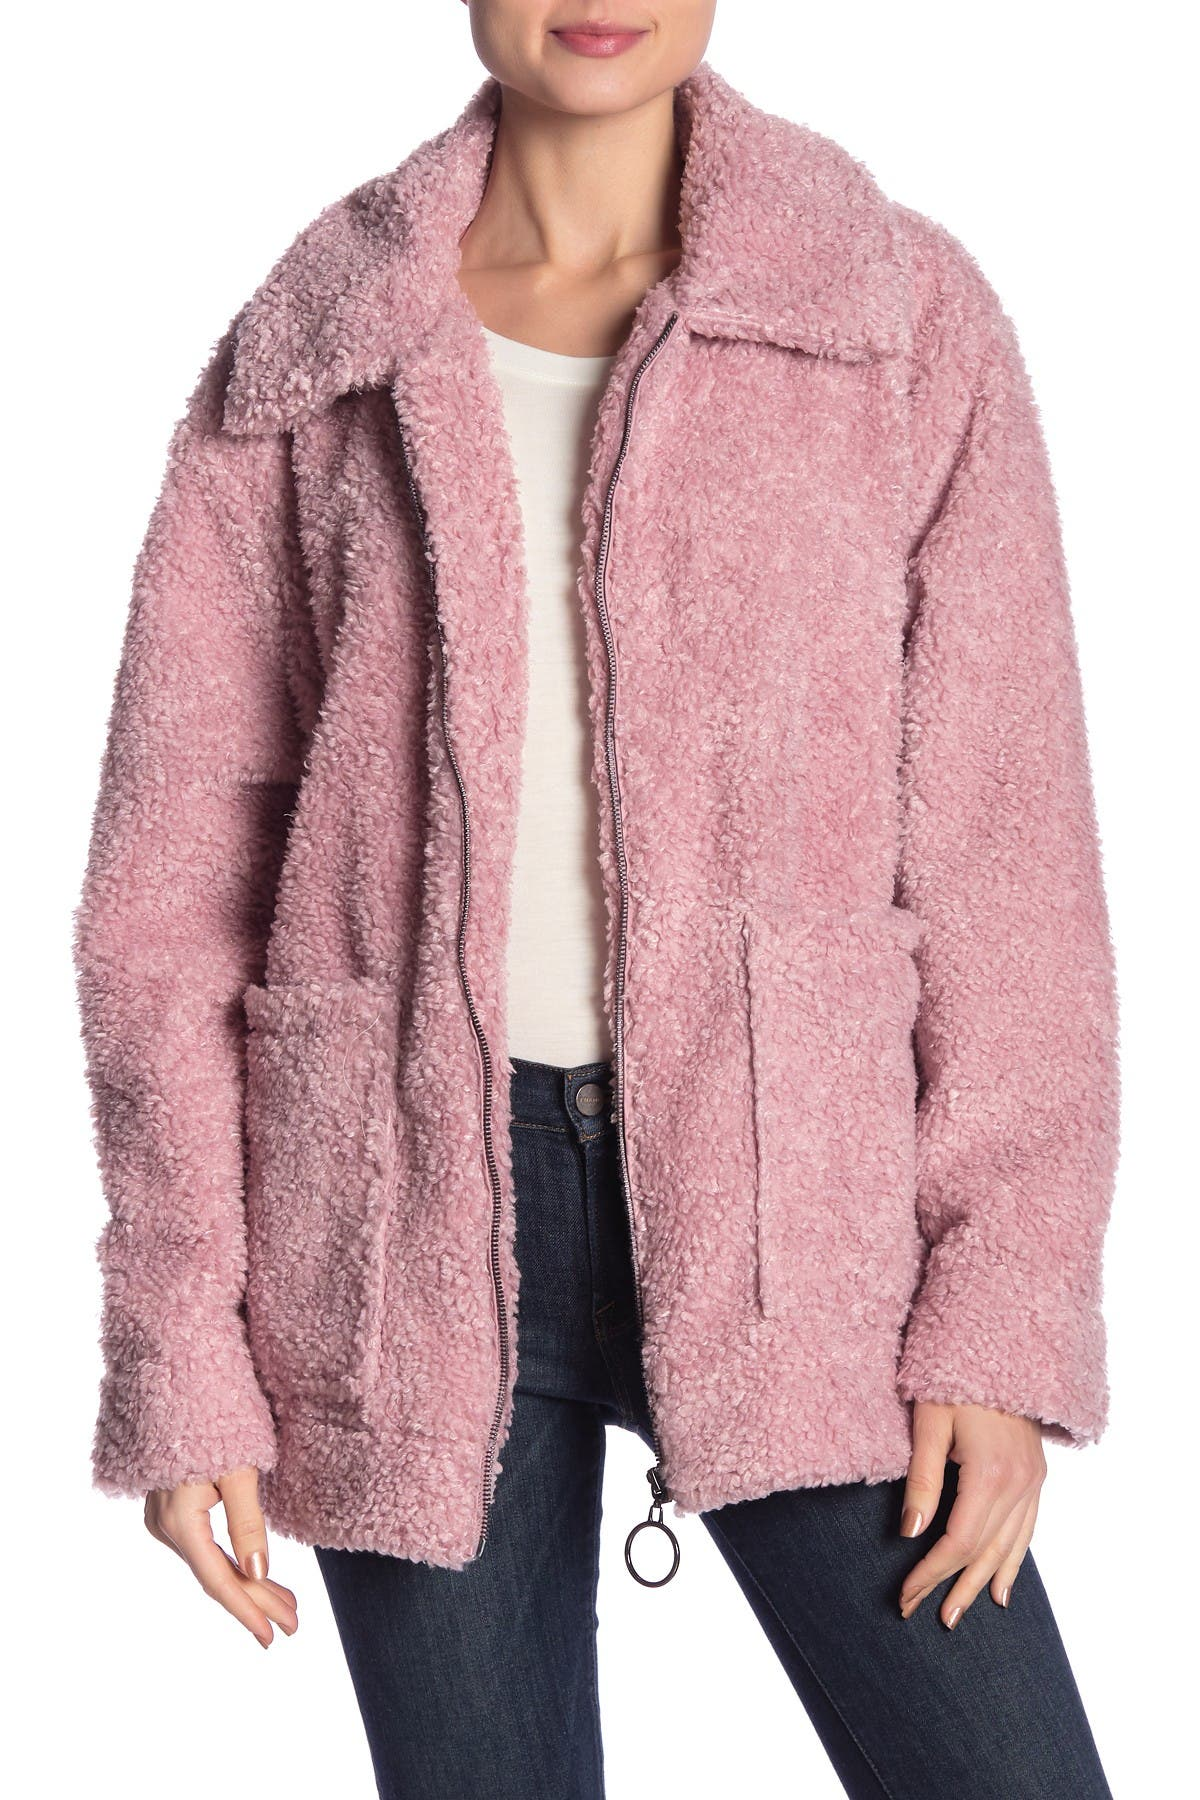 Image of Steve Madden Cozy Faux Shearling Teddy Jacket